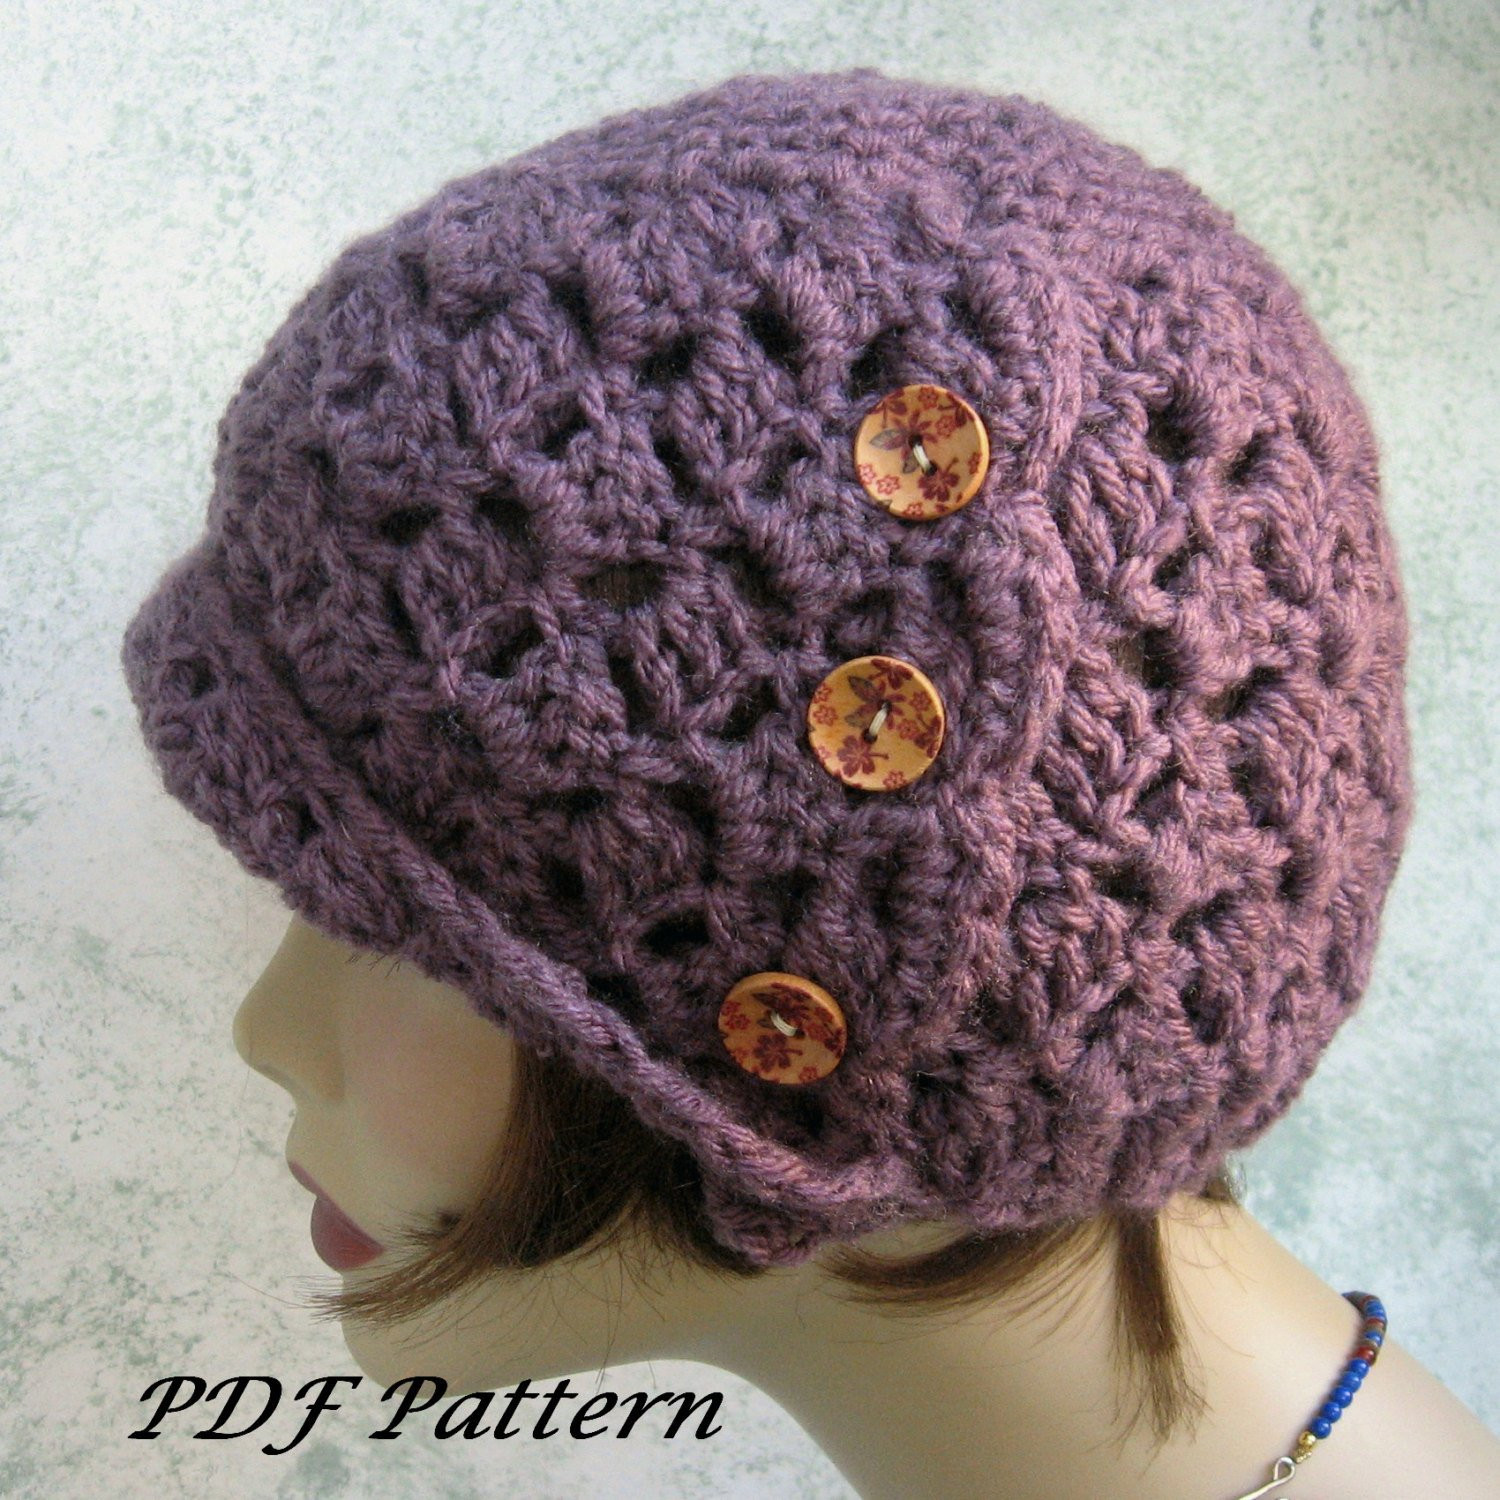 Womens Crochet Hat Patterns Best Of Crochet Hat Pattern Womens Side button Cloche Easy to Make Of Luxury 50 Photos Womens Crochet Hat Patterns